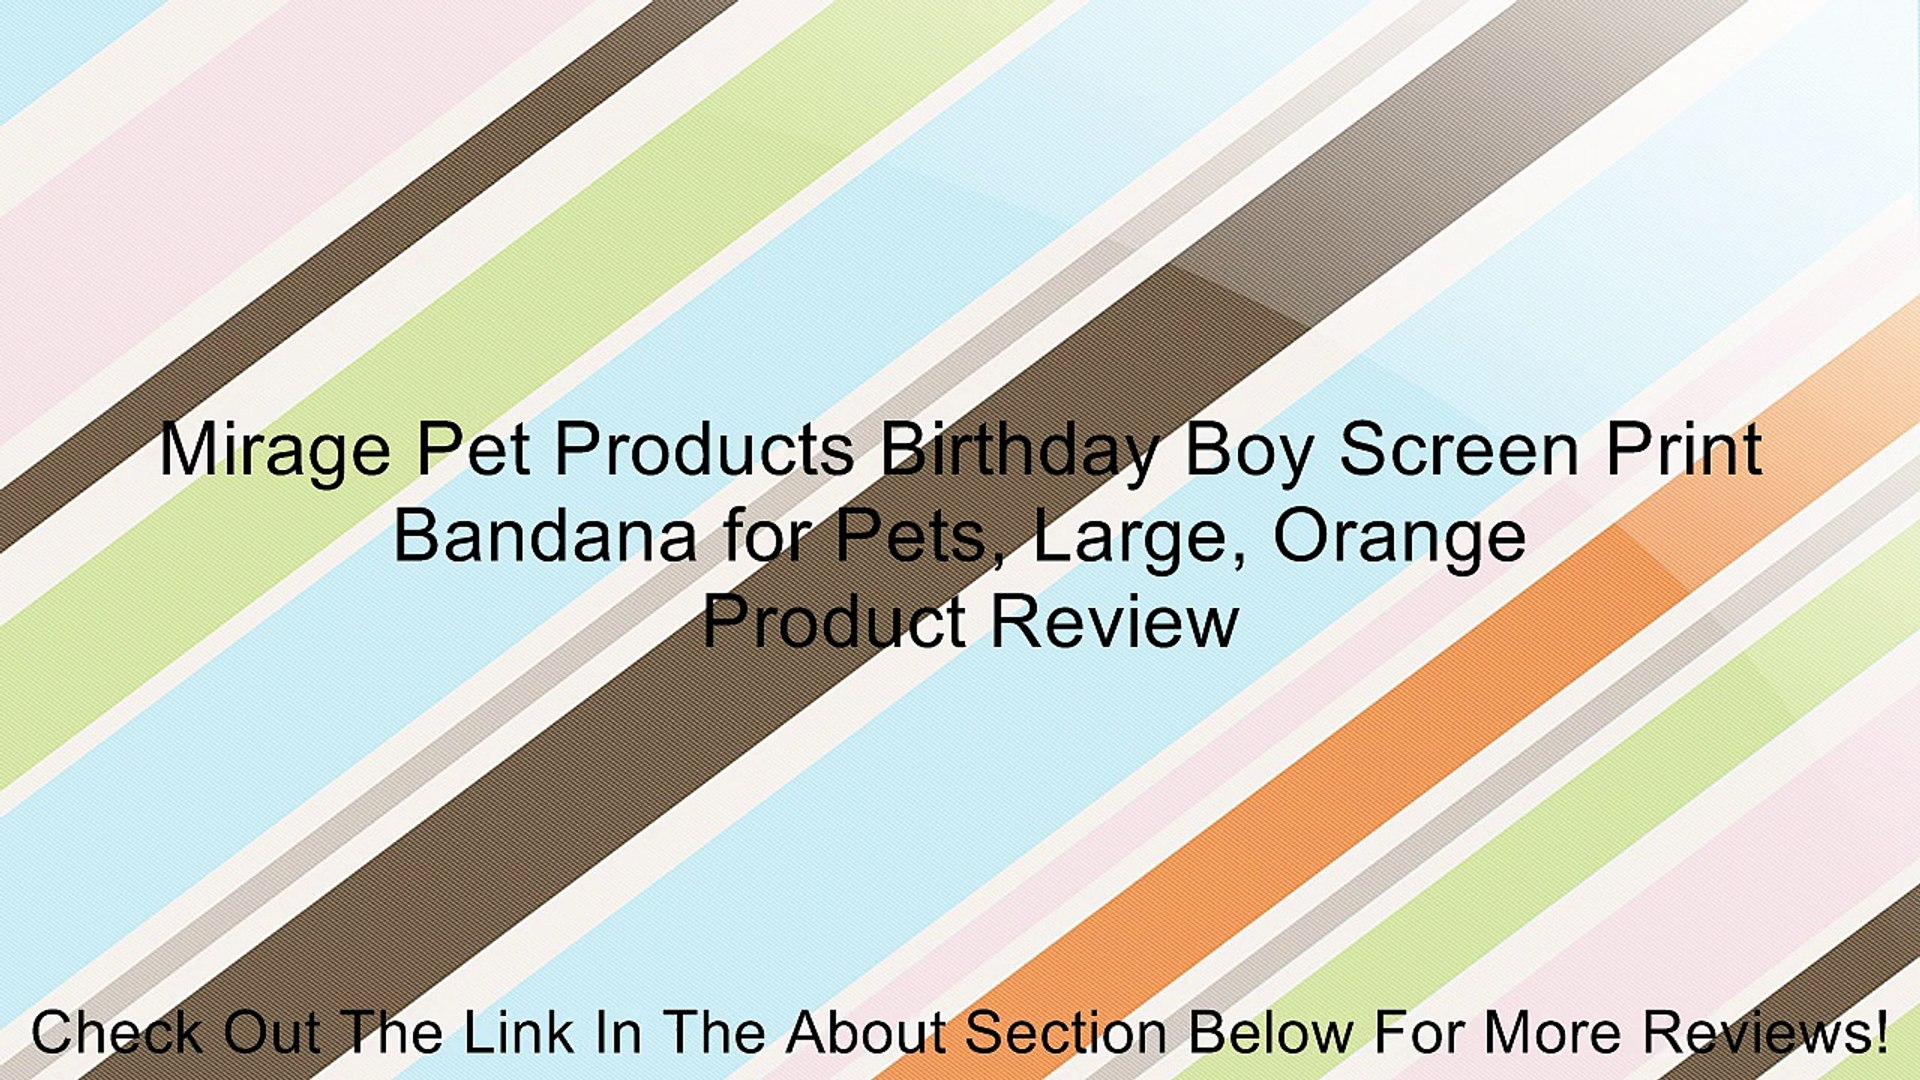 Mirage Pet Products Birthday Boy Screen Print Bandana for Pets, Large, Orange Review